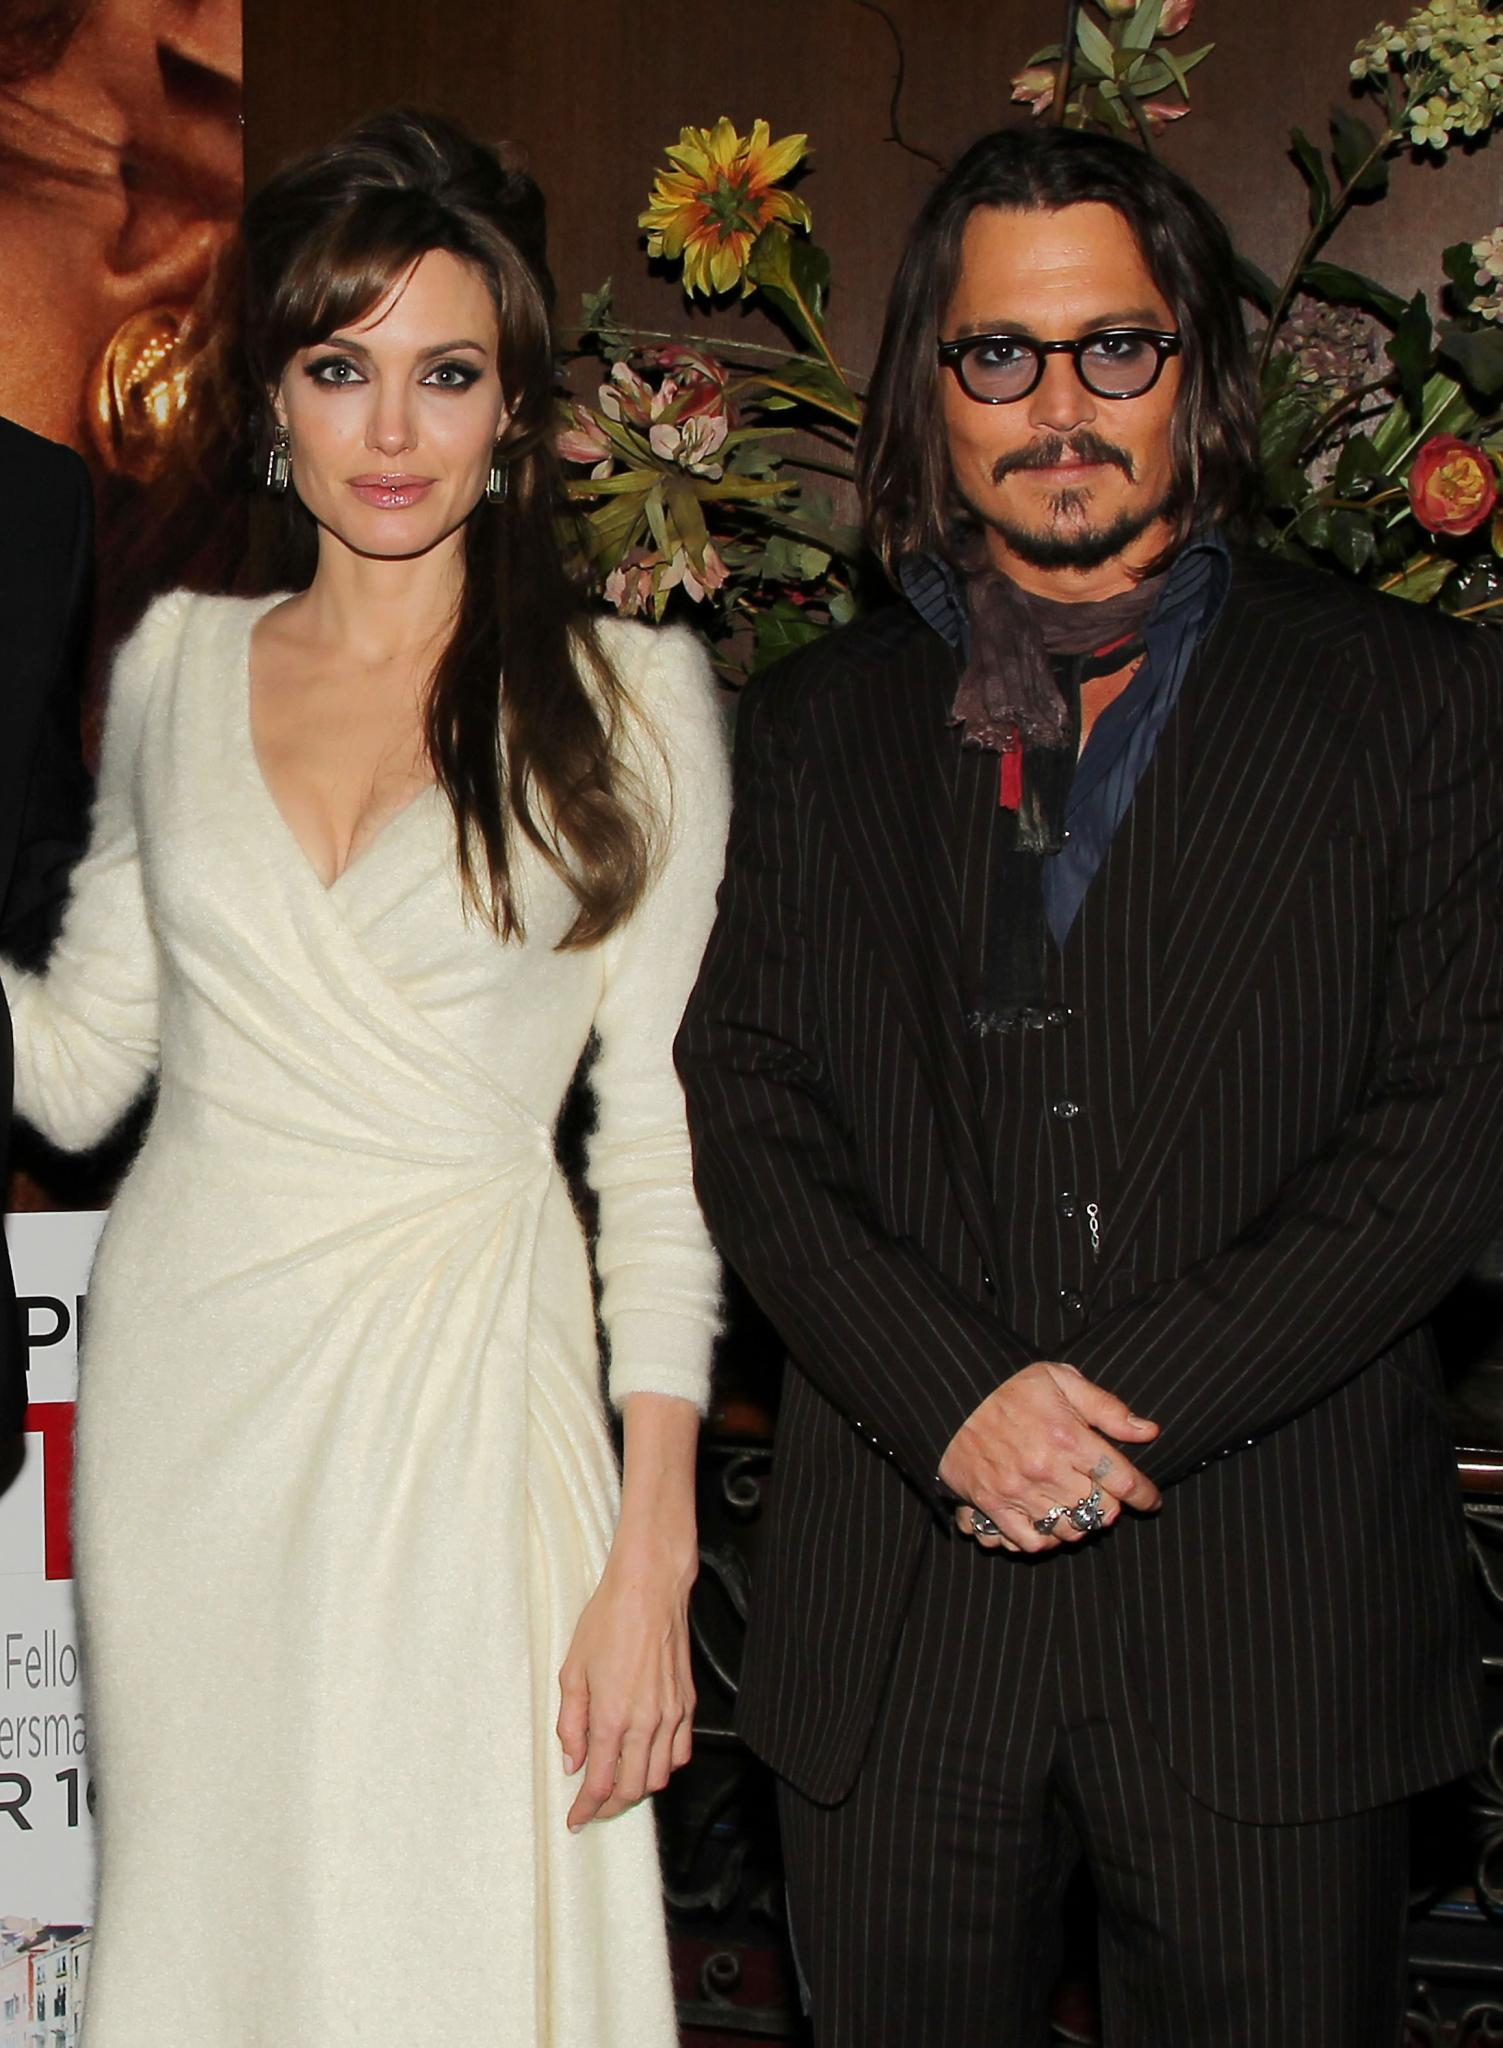 Angelina Jolie + Johnny Depp